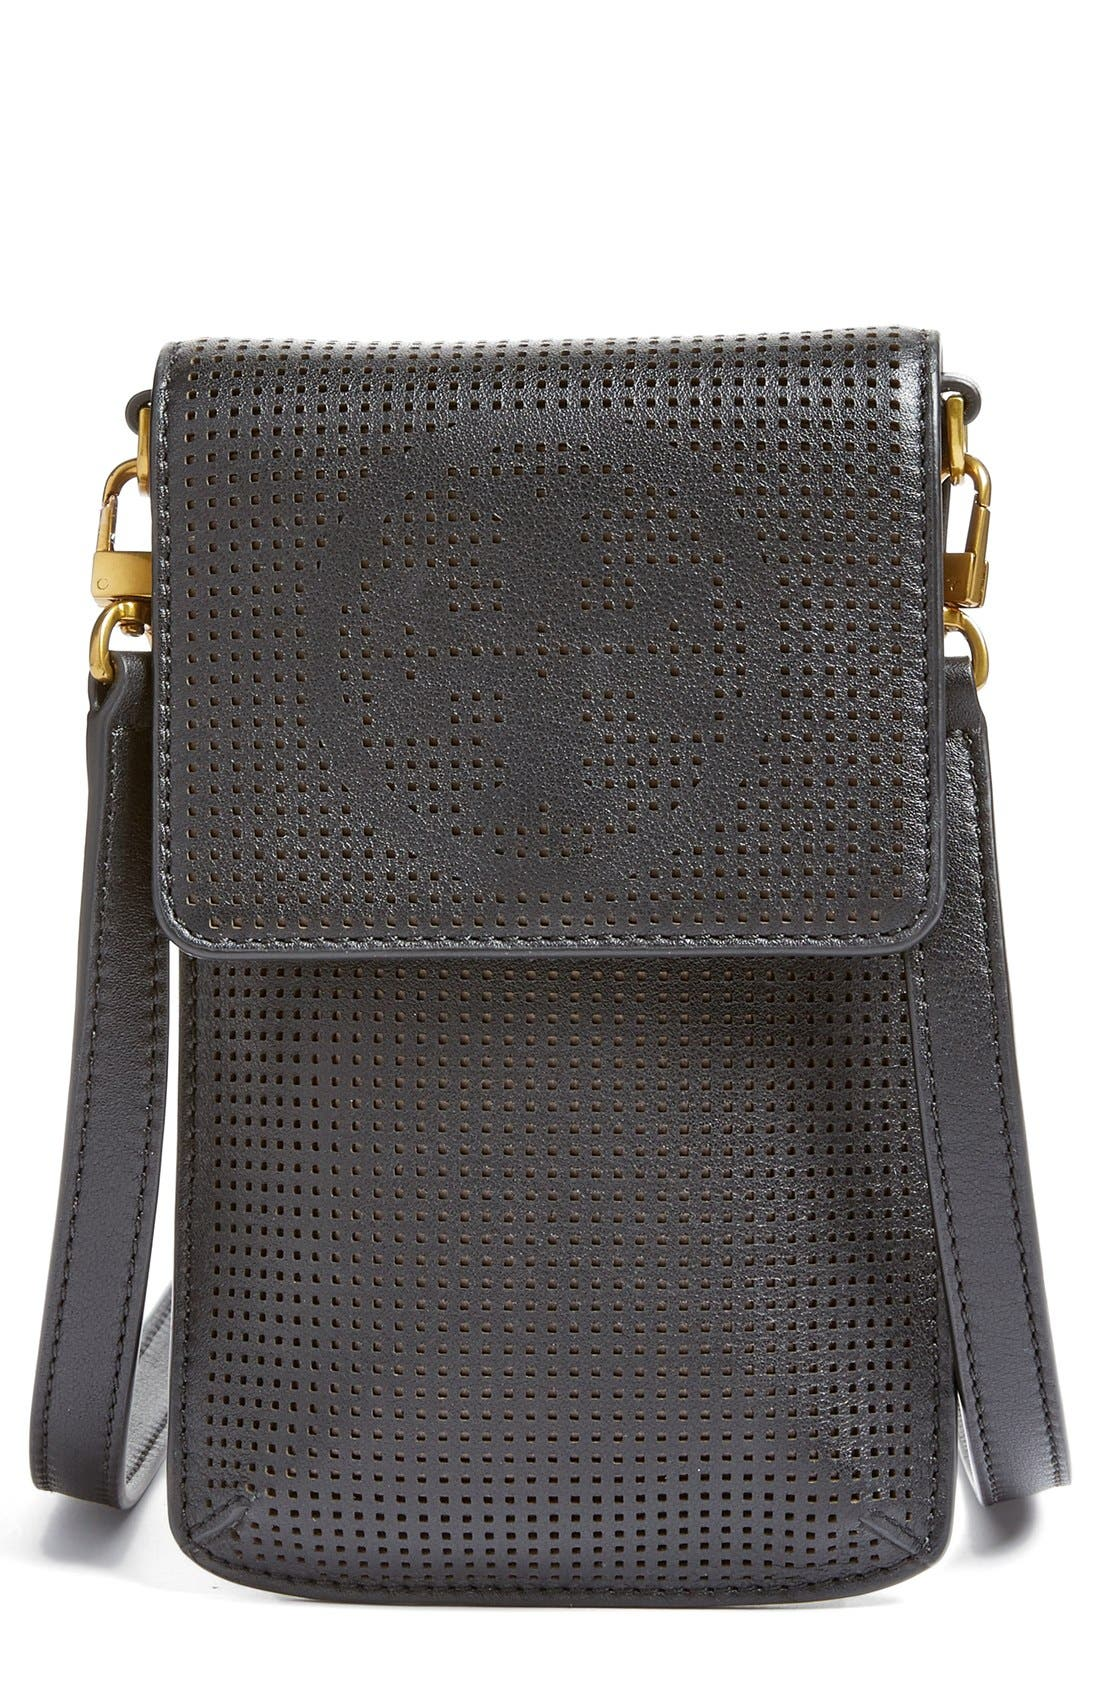 Alternate Image 1 Selected - Tory Burch Perforated Leather Smartphone Crossbody Bag